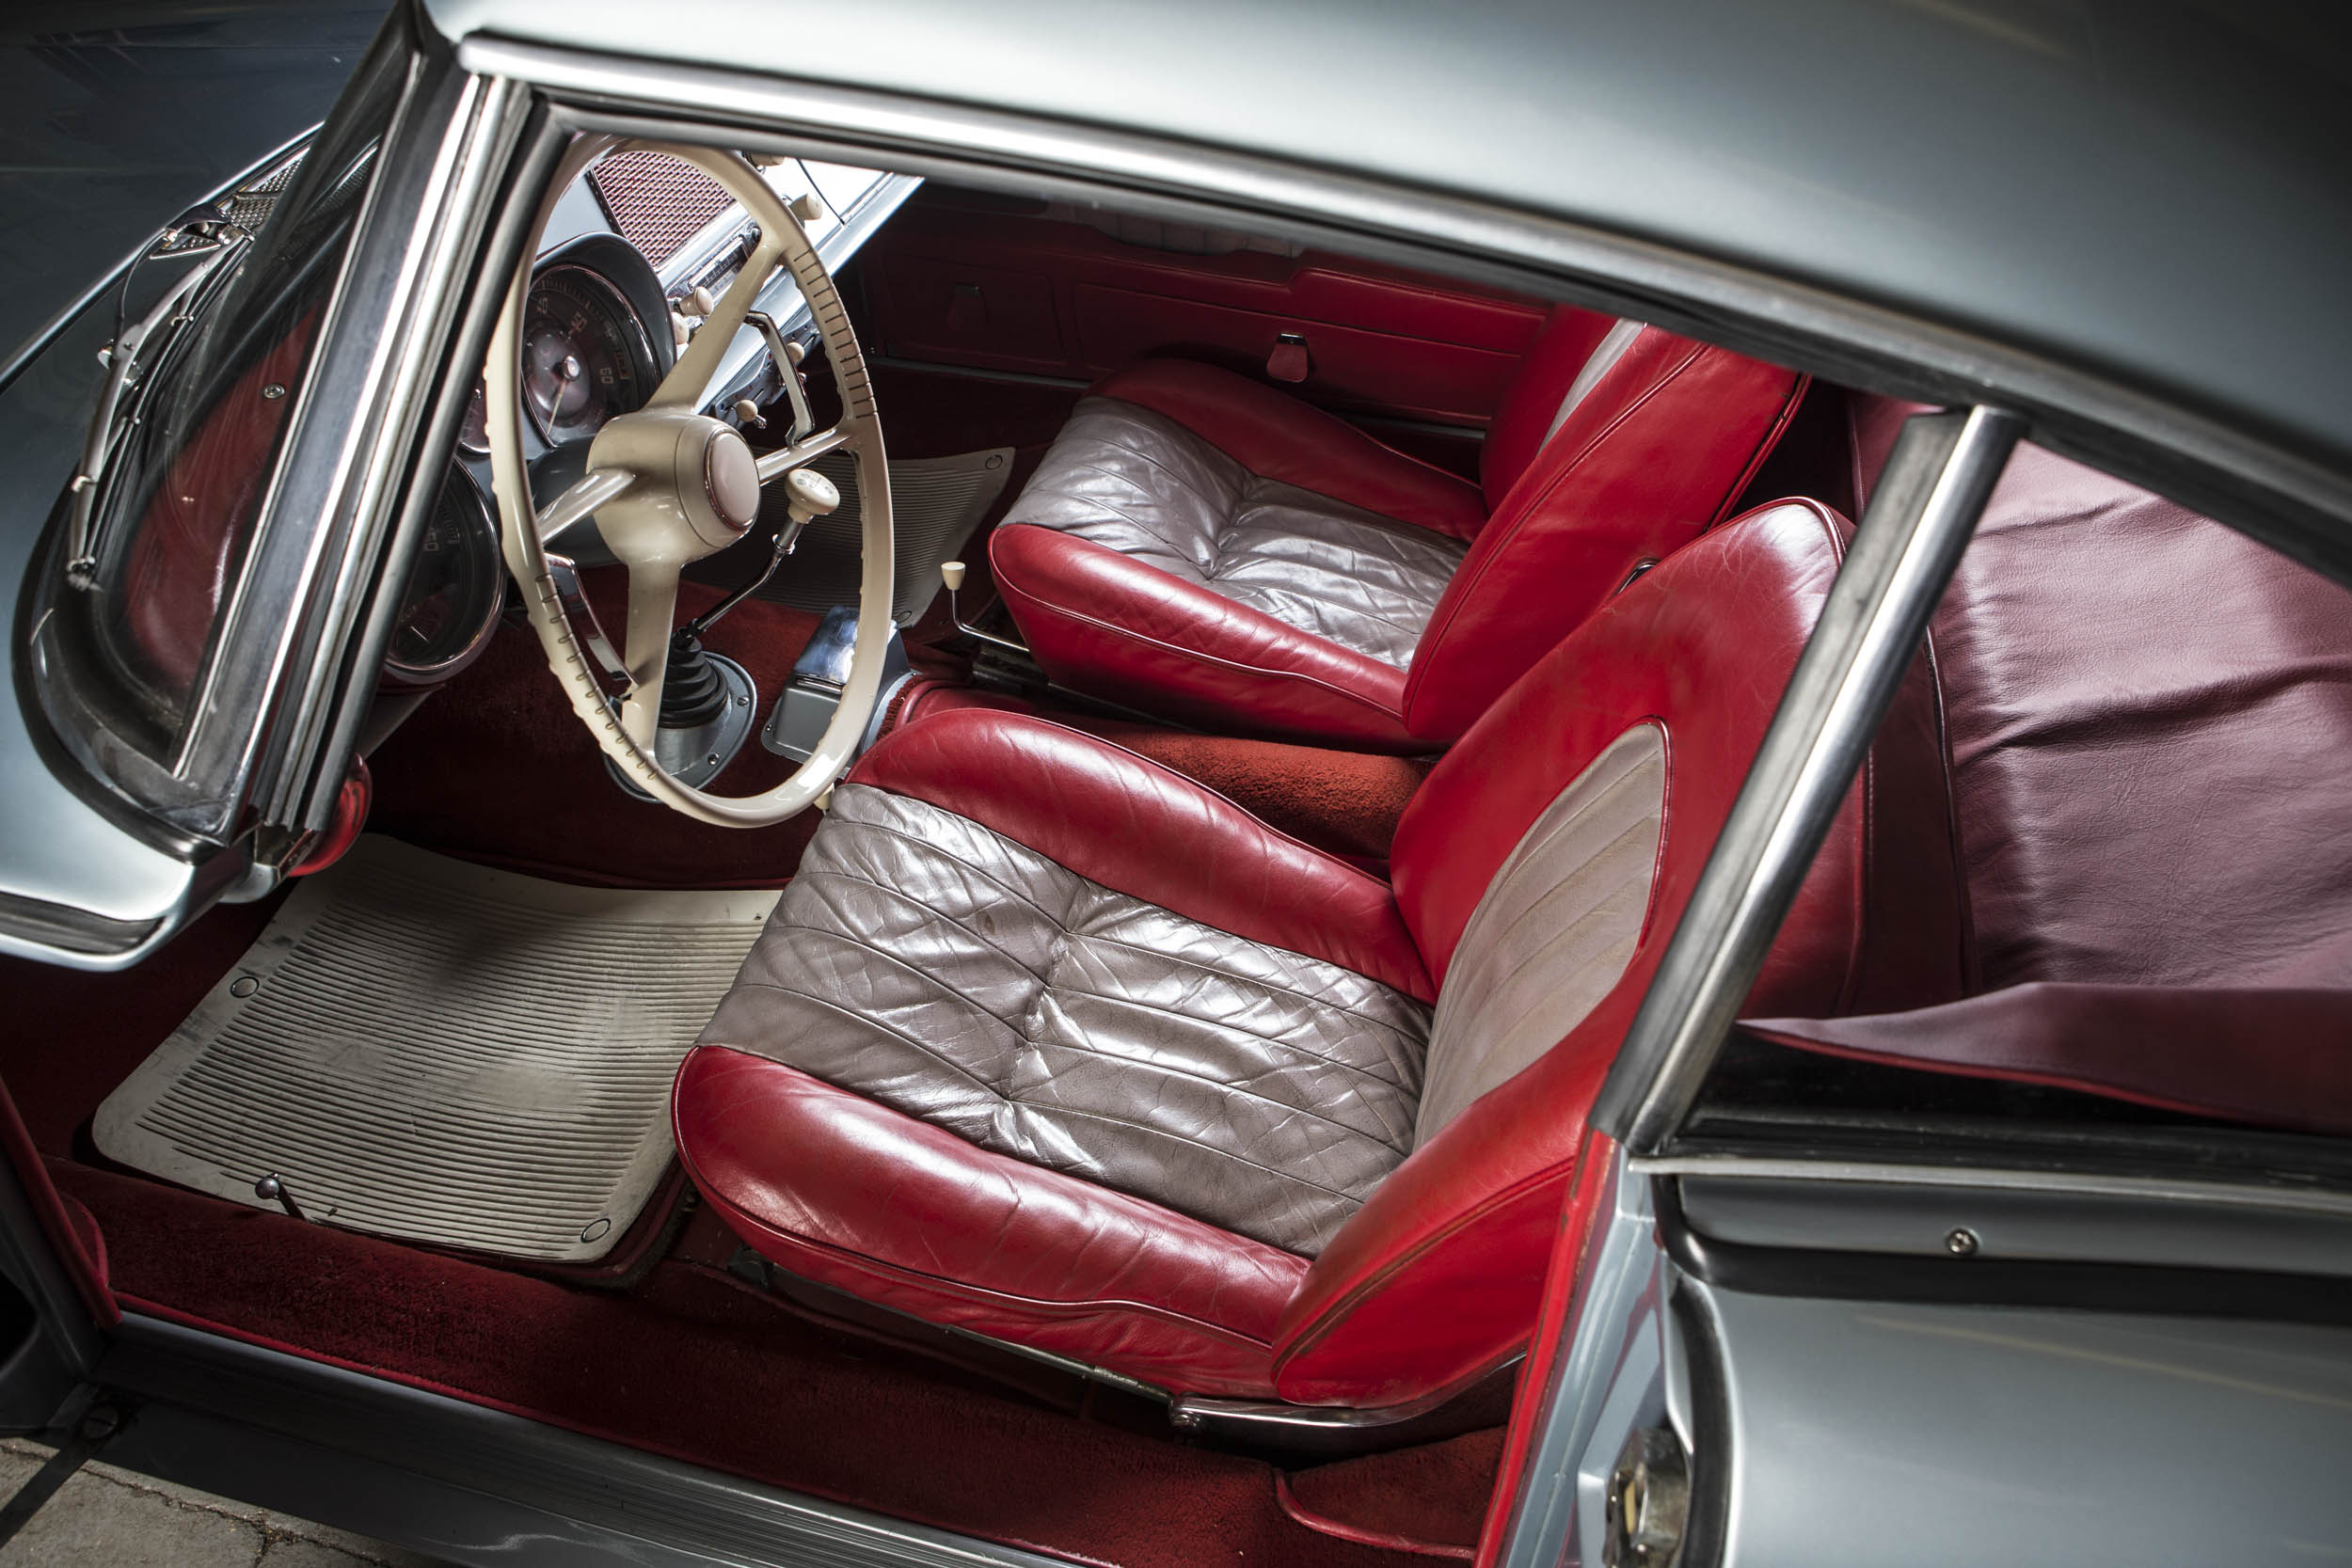 John Surtees' 1957 BMW 507 interior